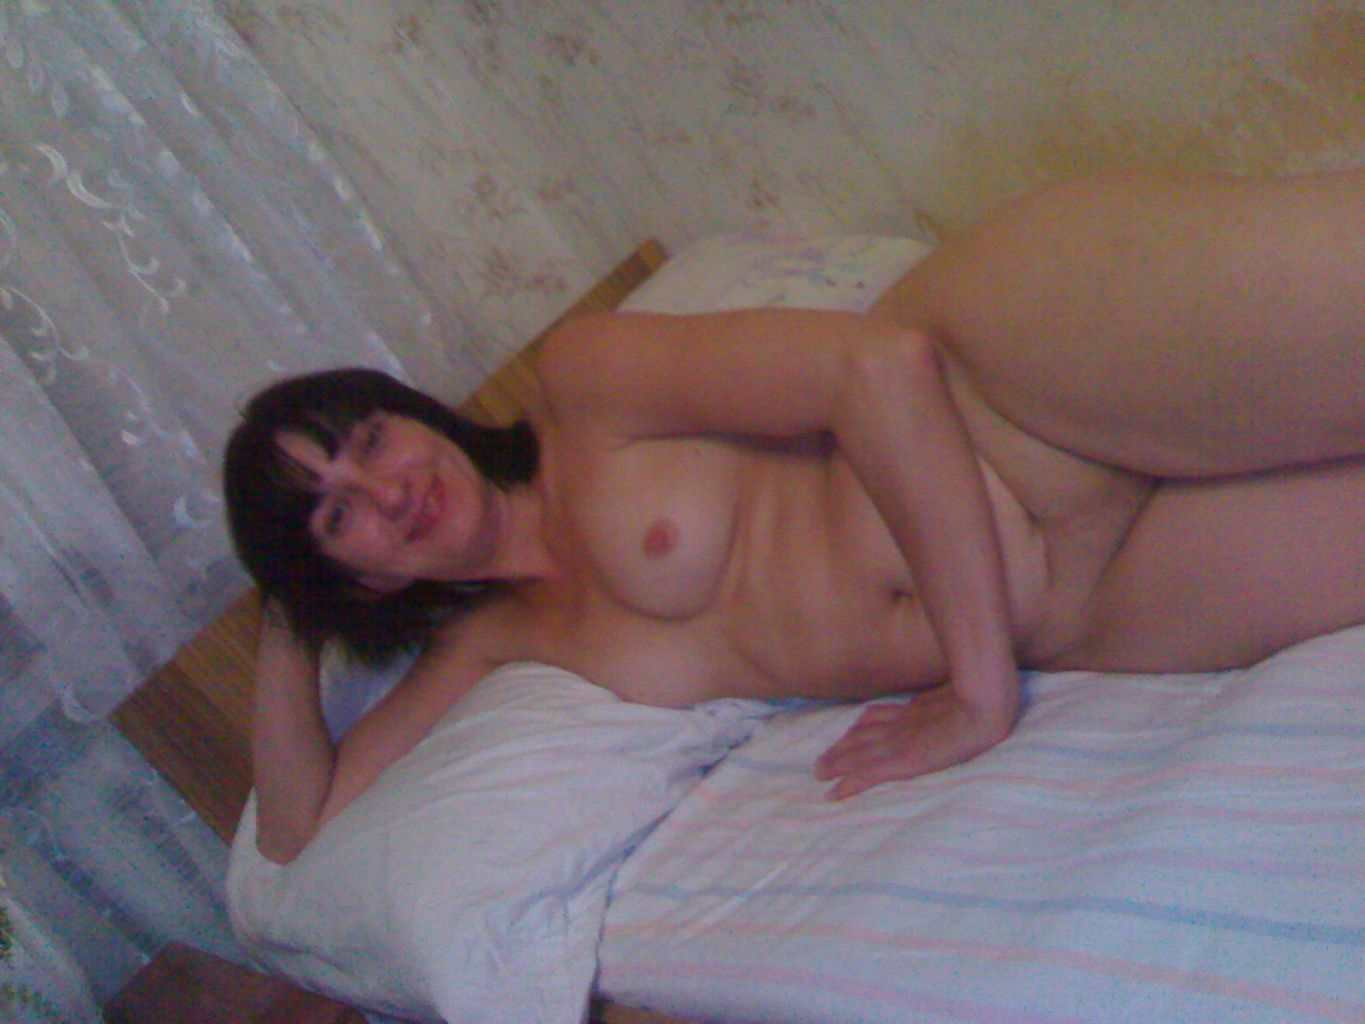 videos porno gratis de larga duracion: